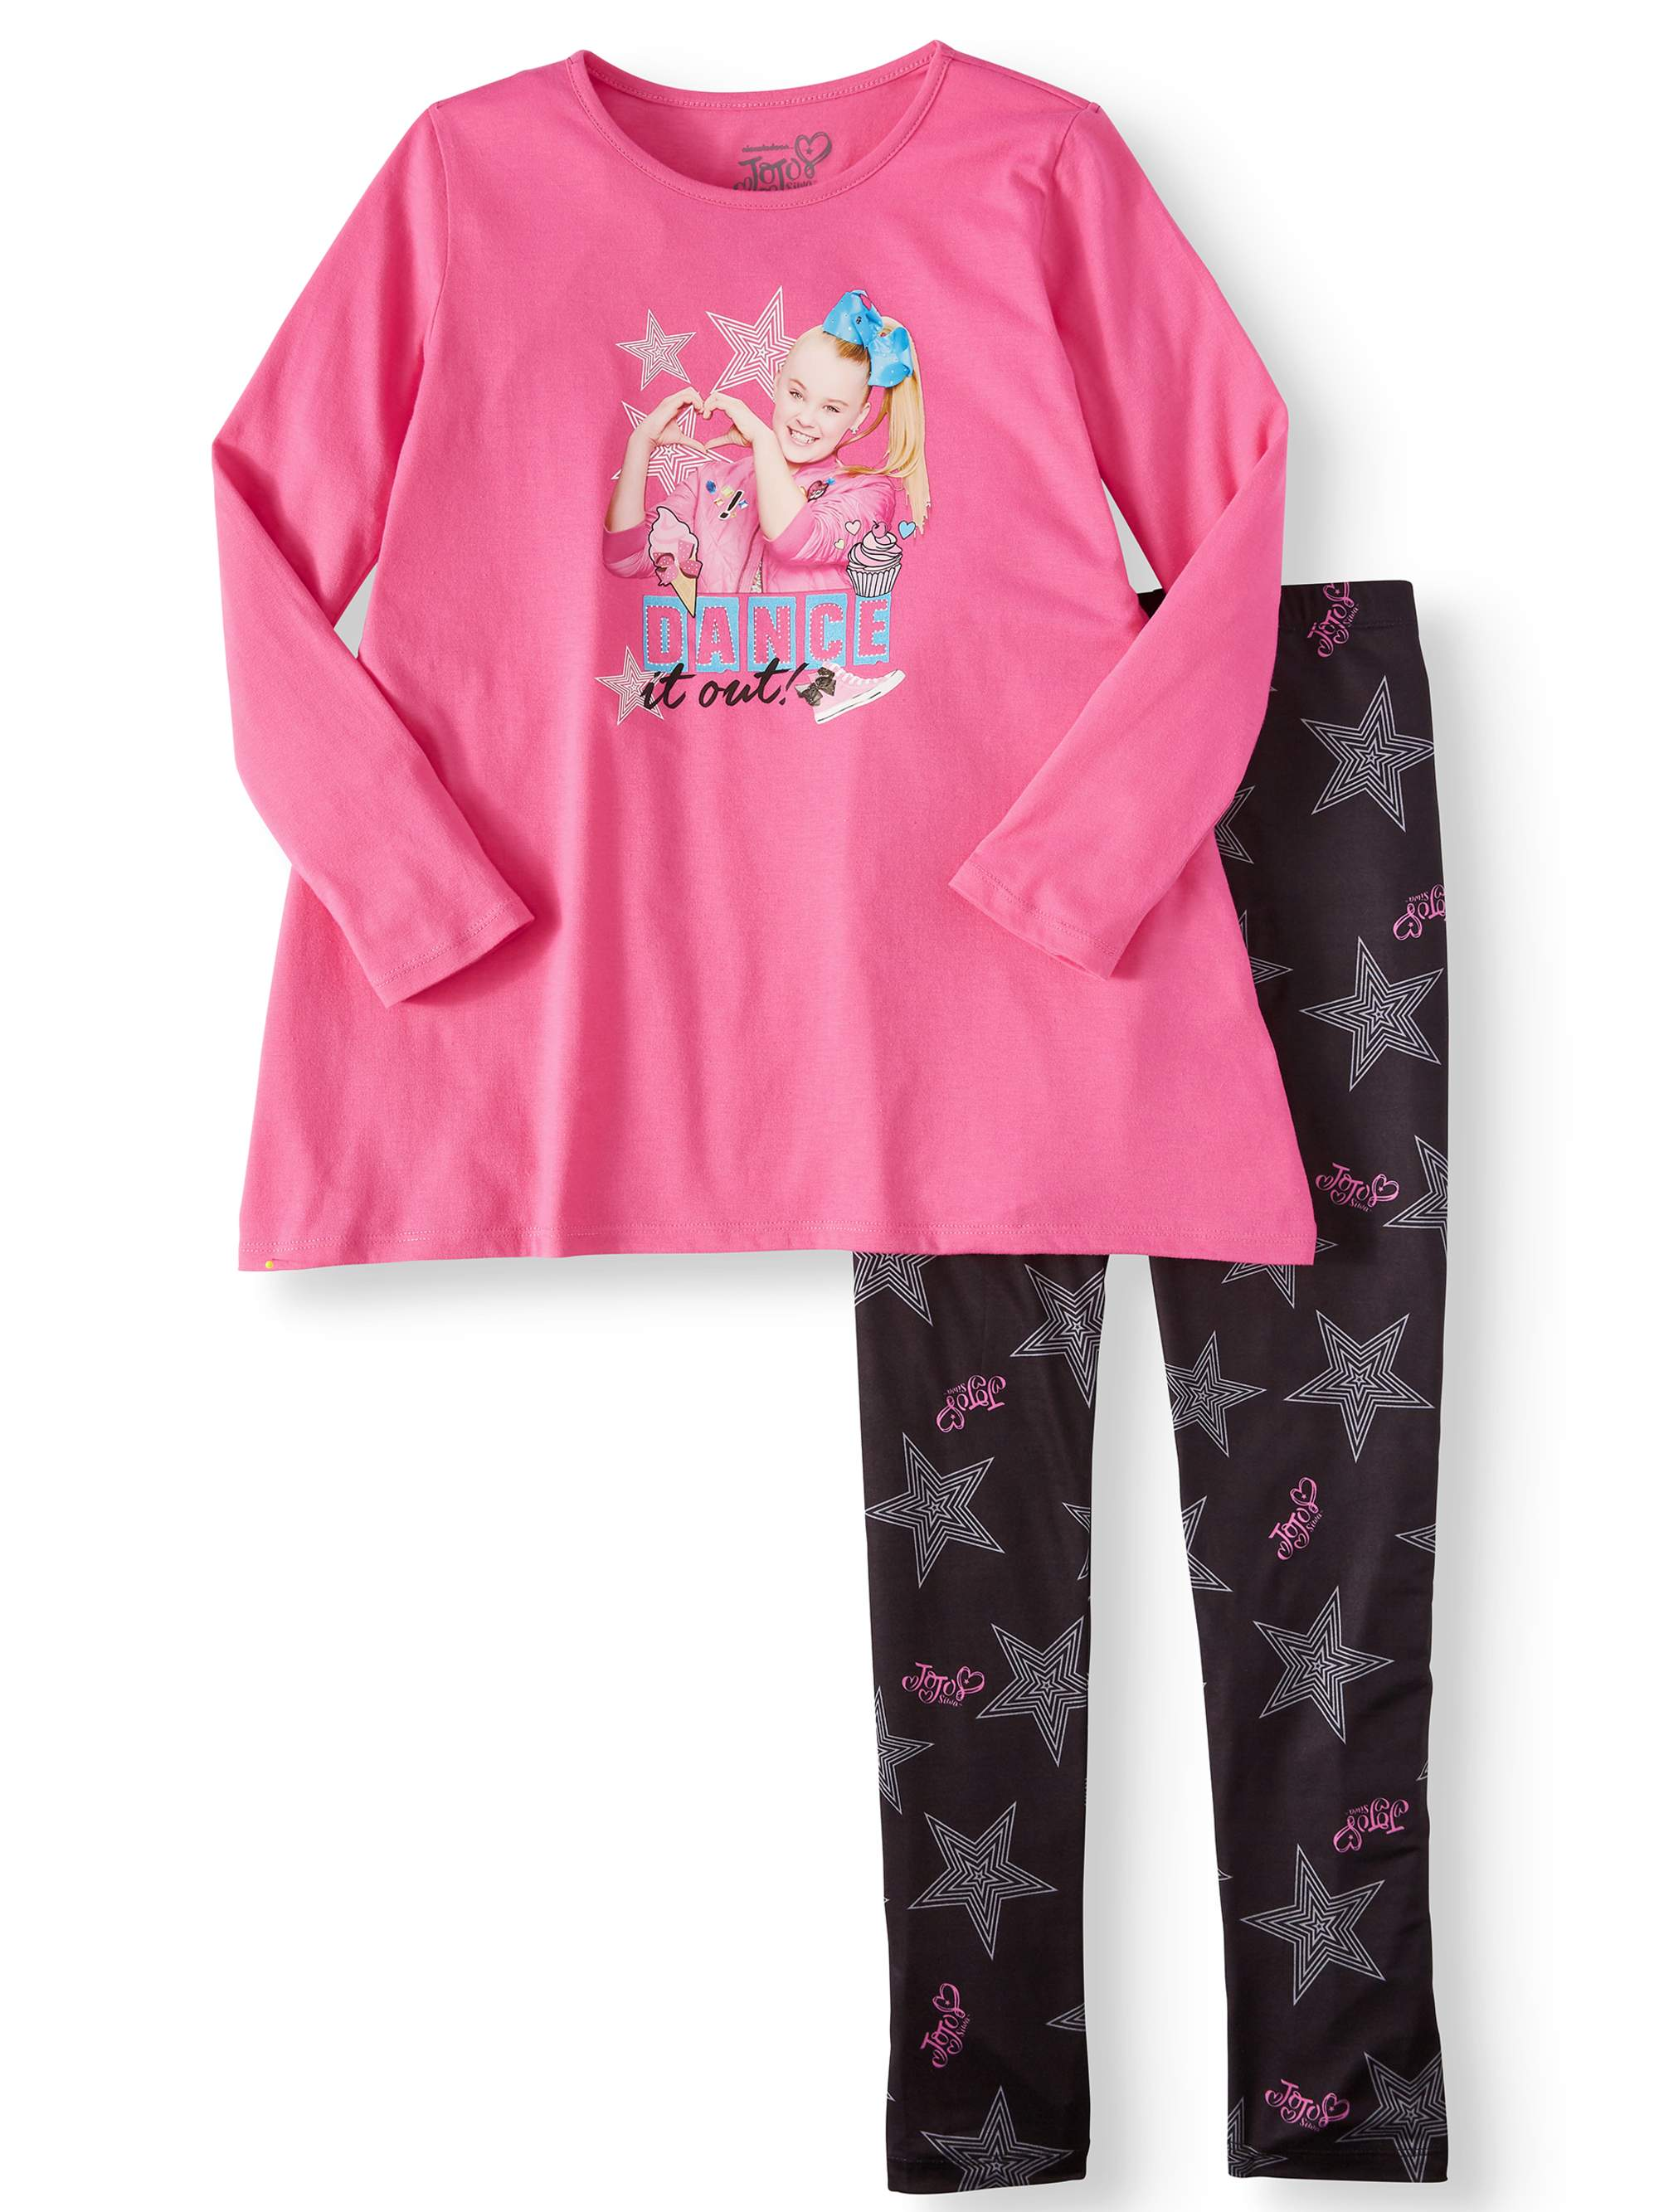 Dream Star Girls 2-Piece Leggings Set Outfit with Necklace